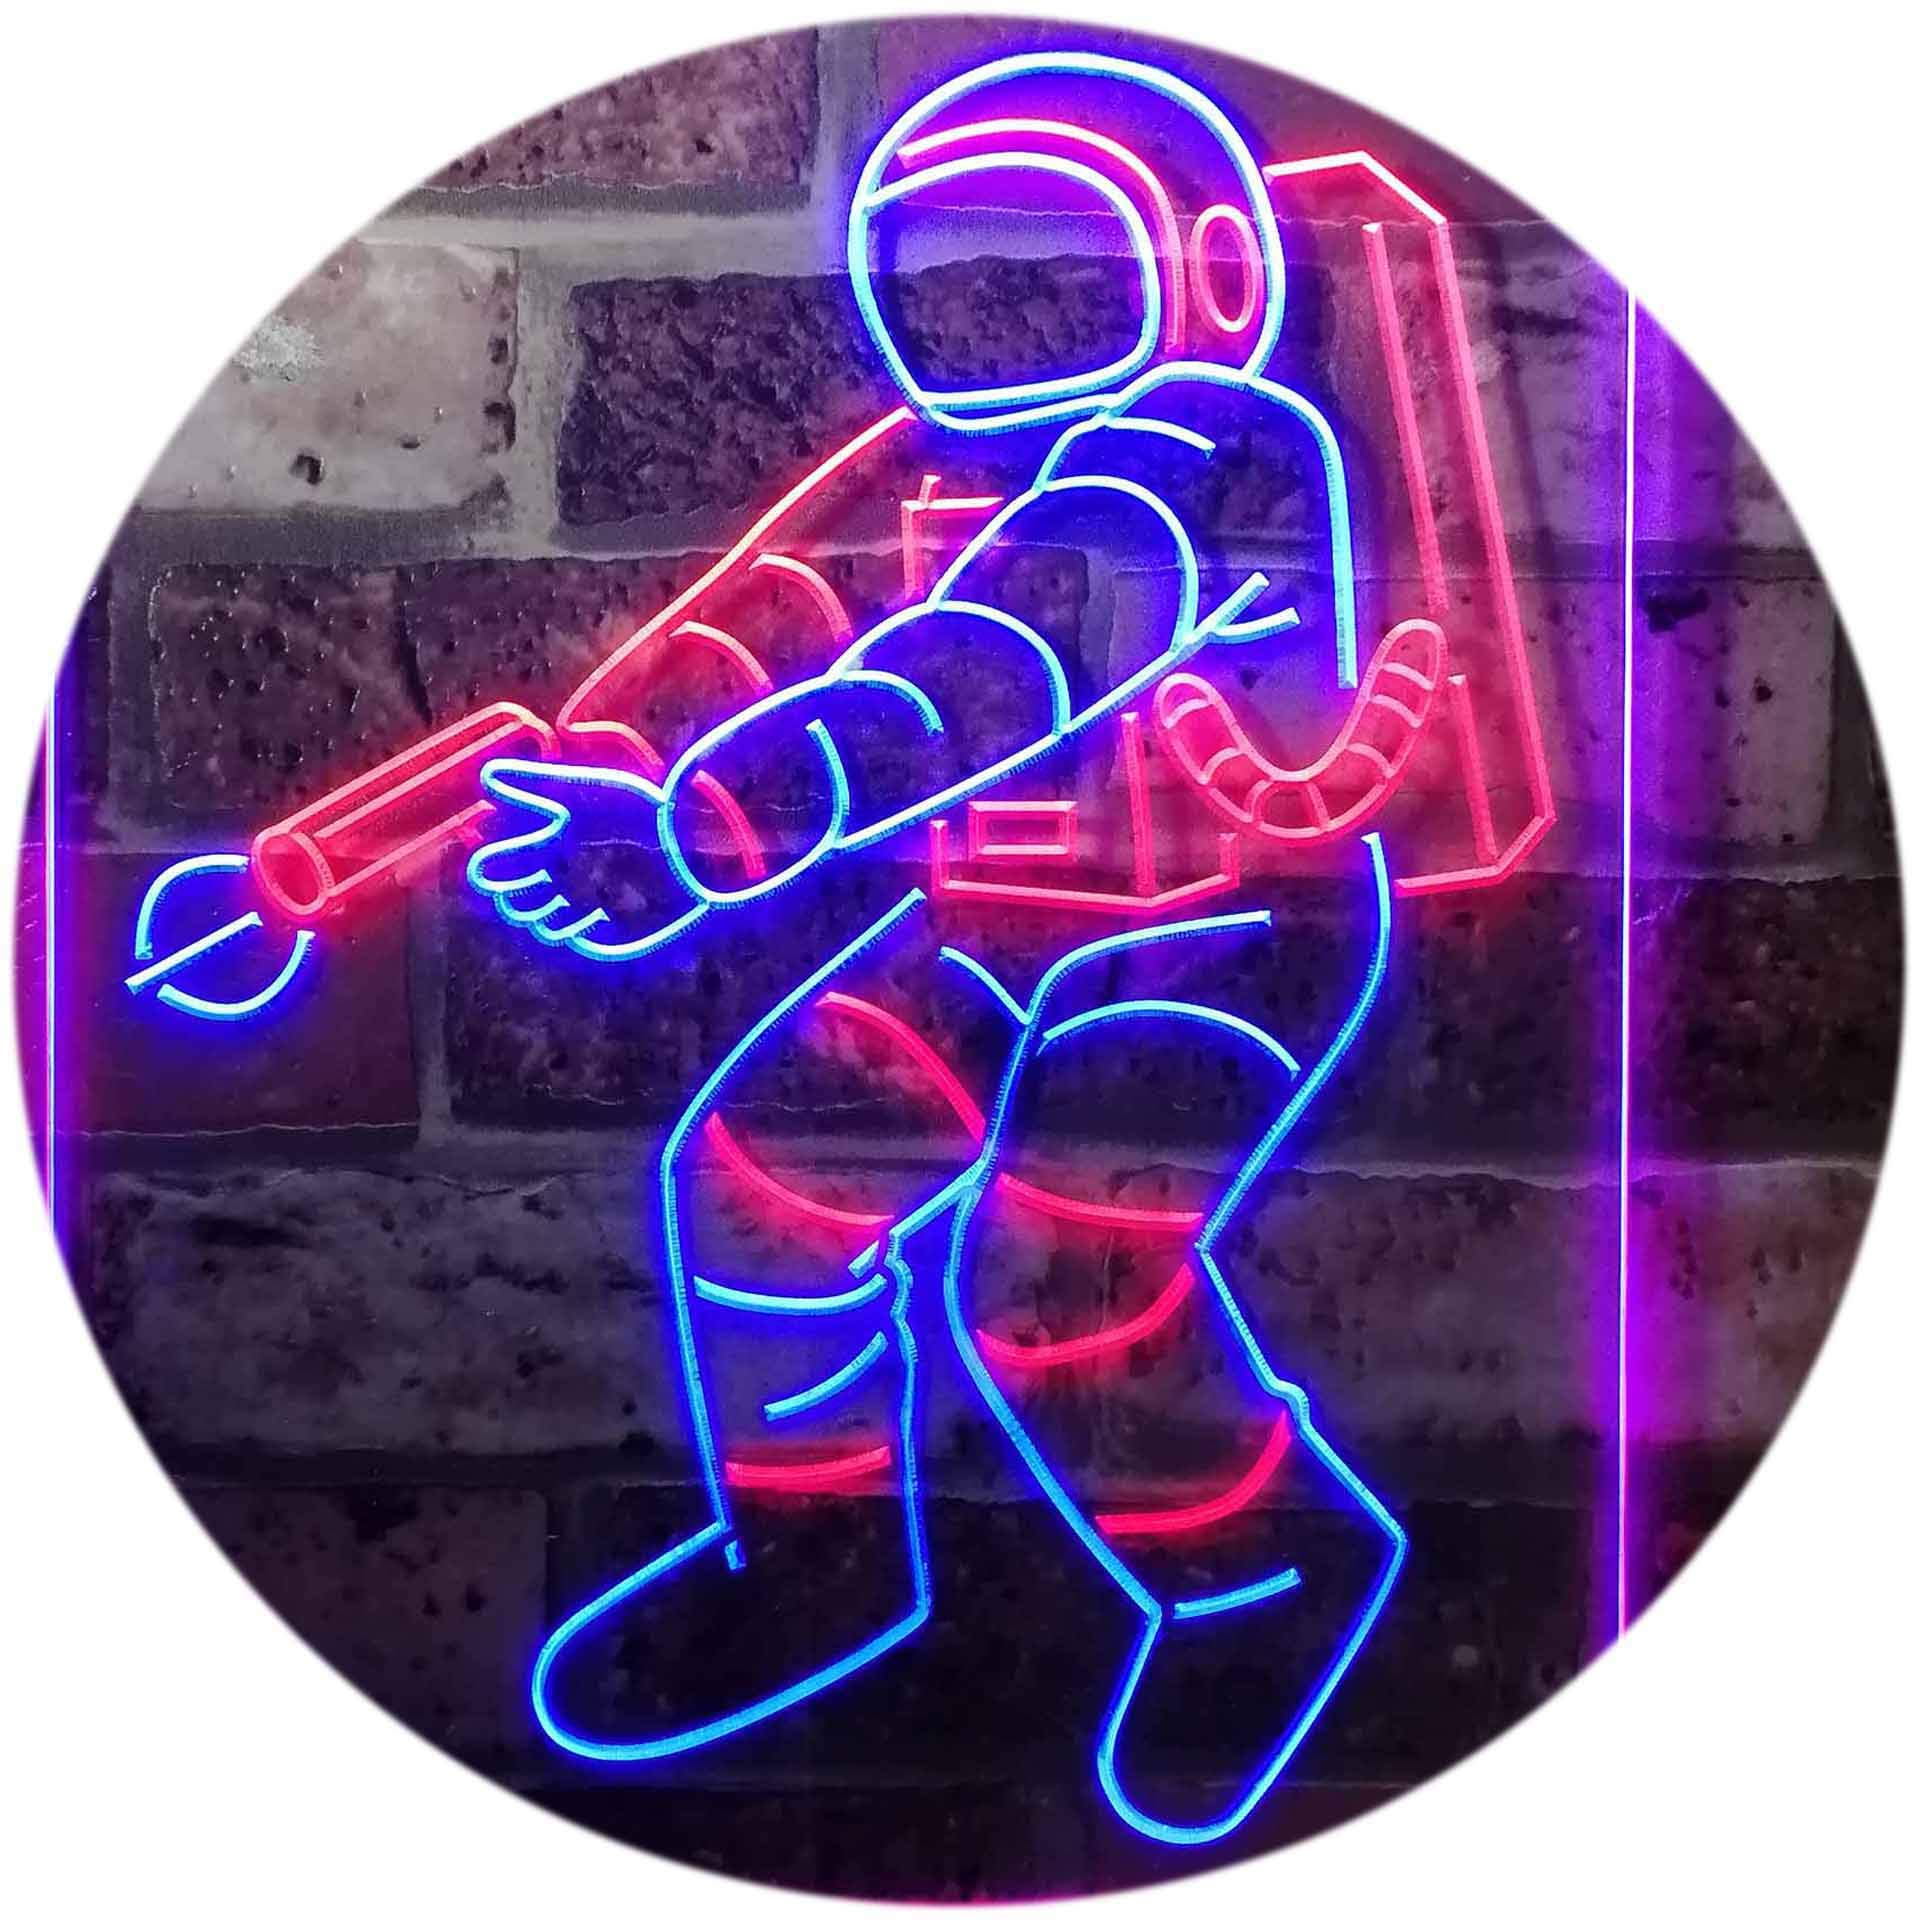 ADVPRO Astronaut Space Rocket Shuttle Kid Room Dual Color LED Neon Sign Red & Blue 12 x 16 Inches st6s34-i3136-rb